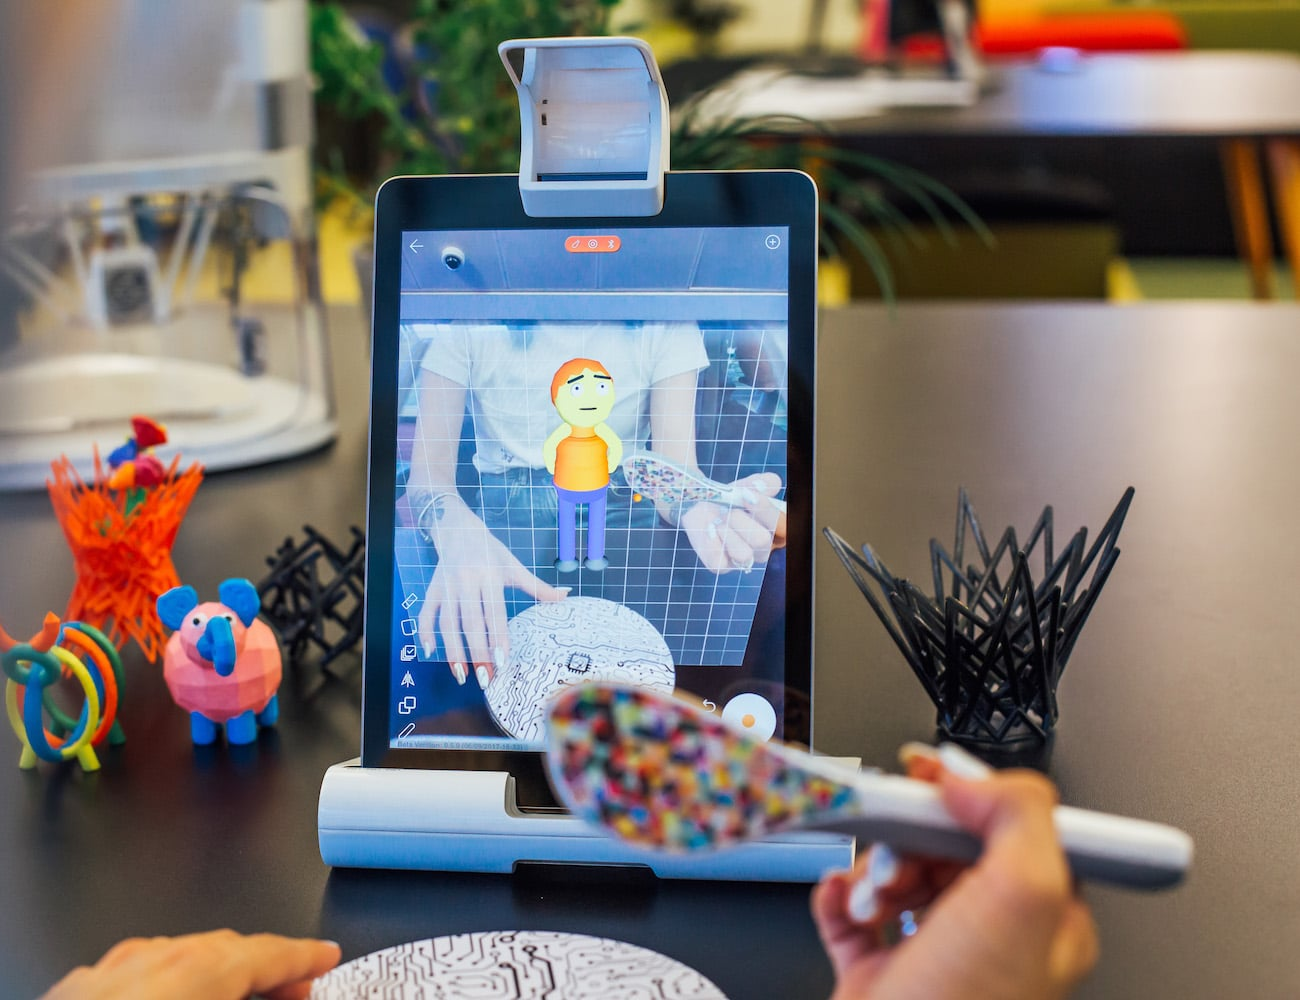 Yeehaw Wand Uses AR to Let You 3D-Sketch in Thin Air